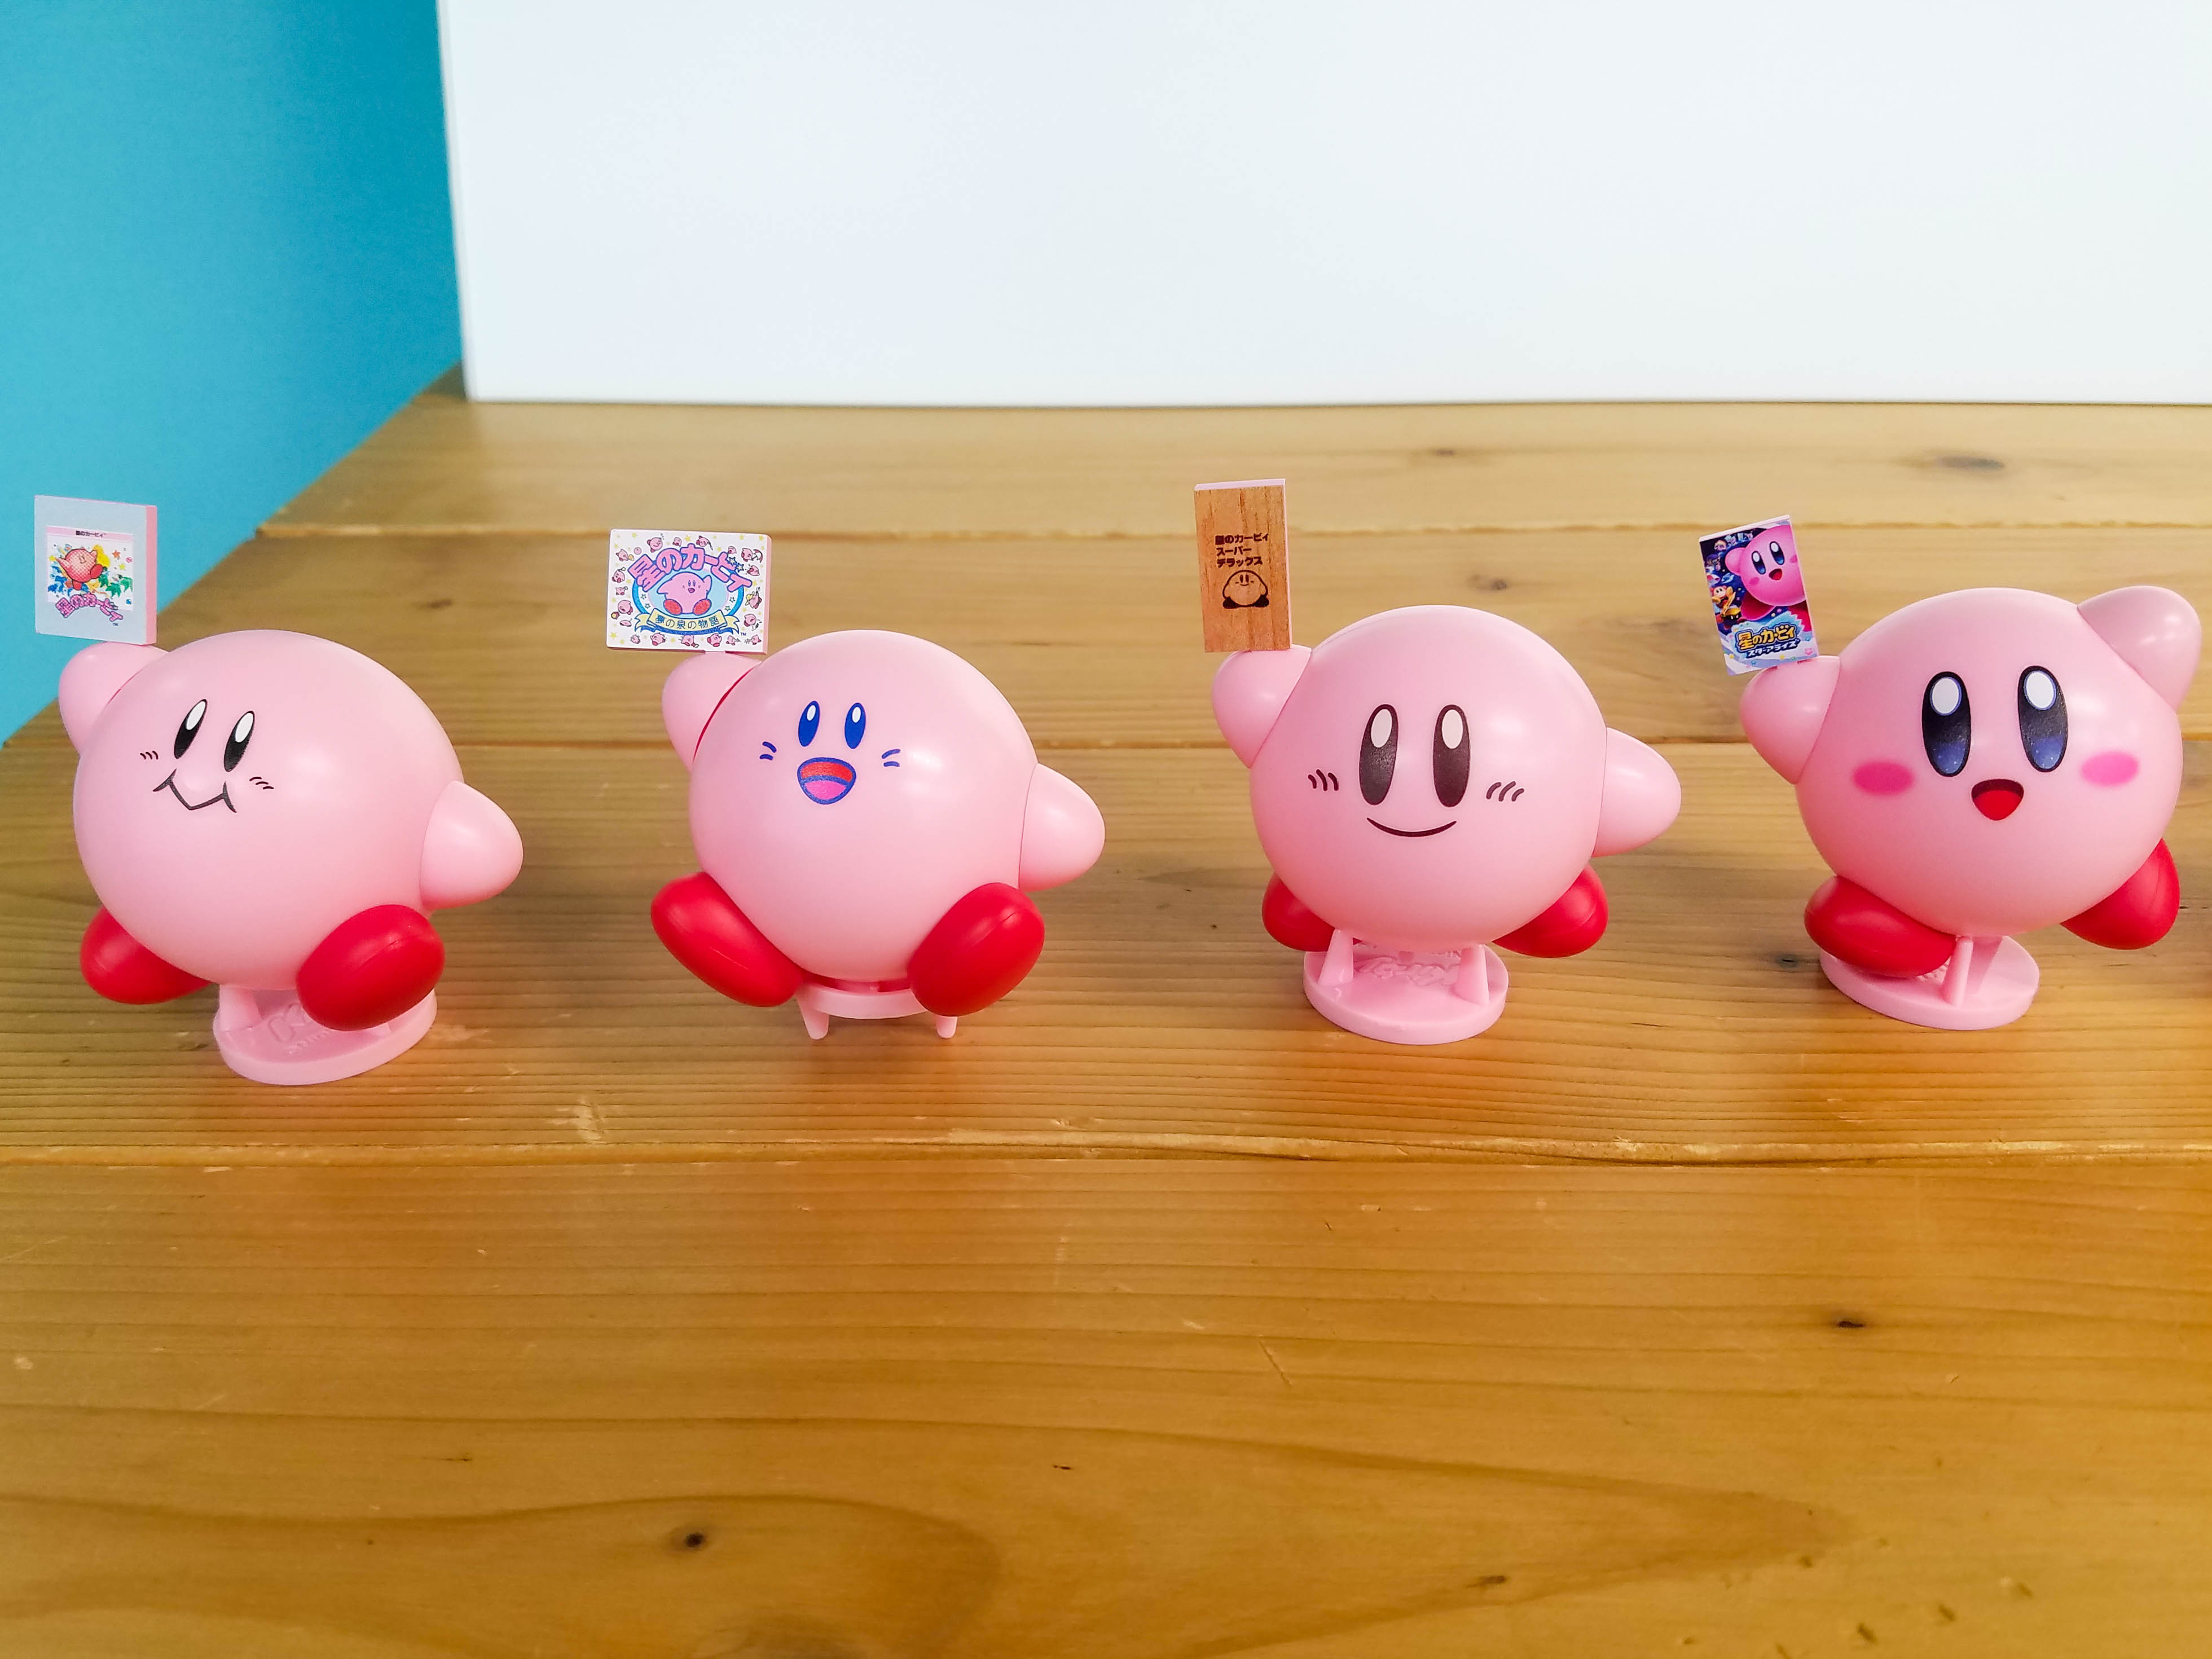 The second set of the Corocoroid series of capsule toys